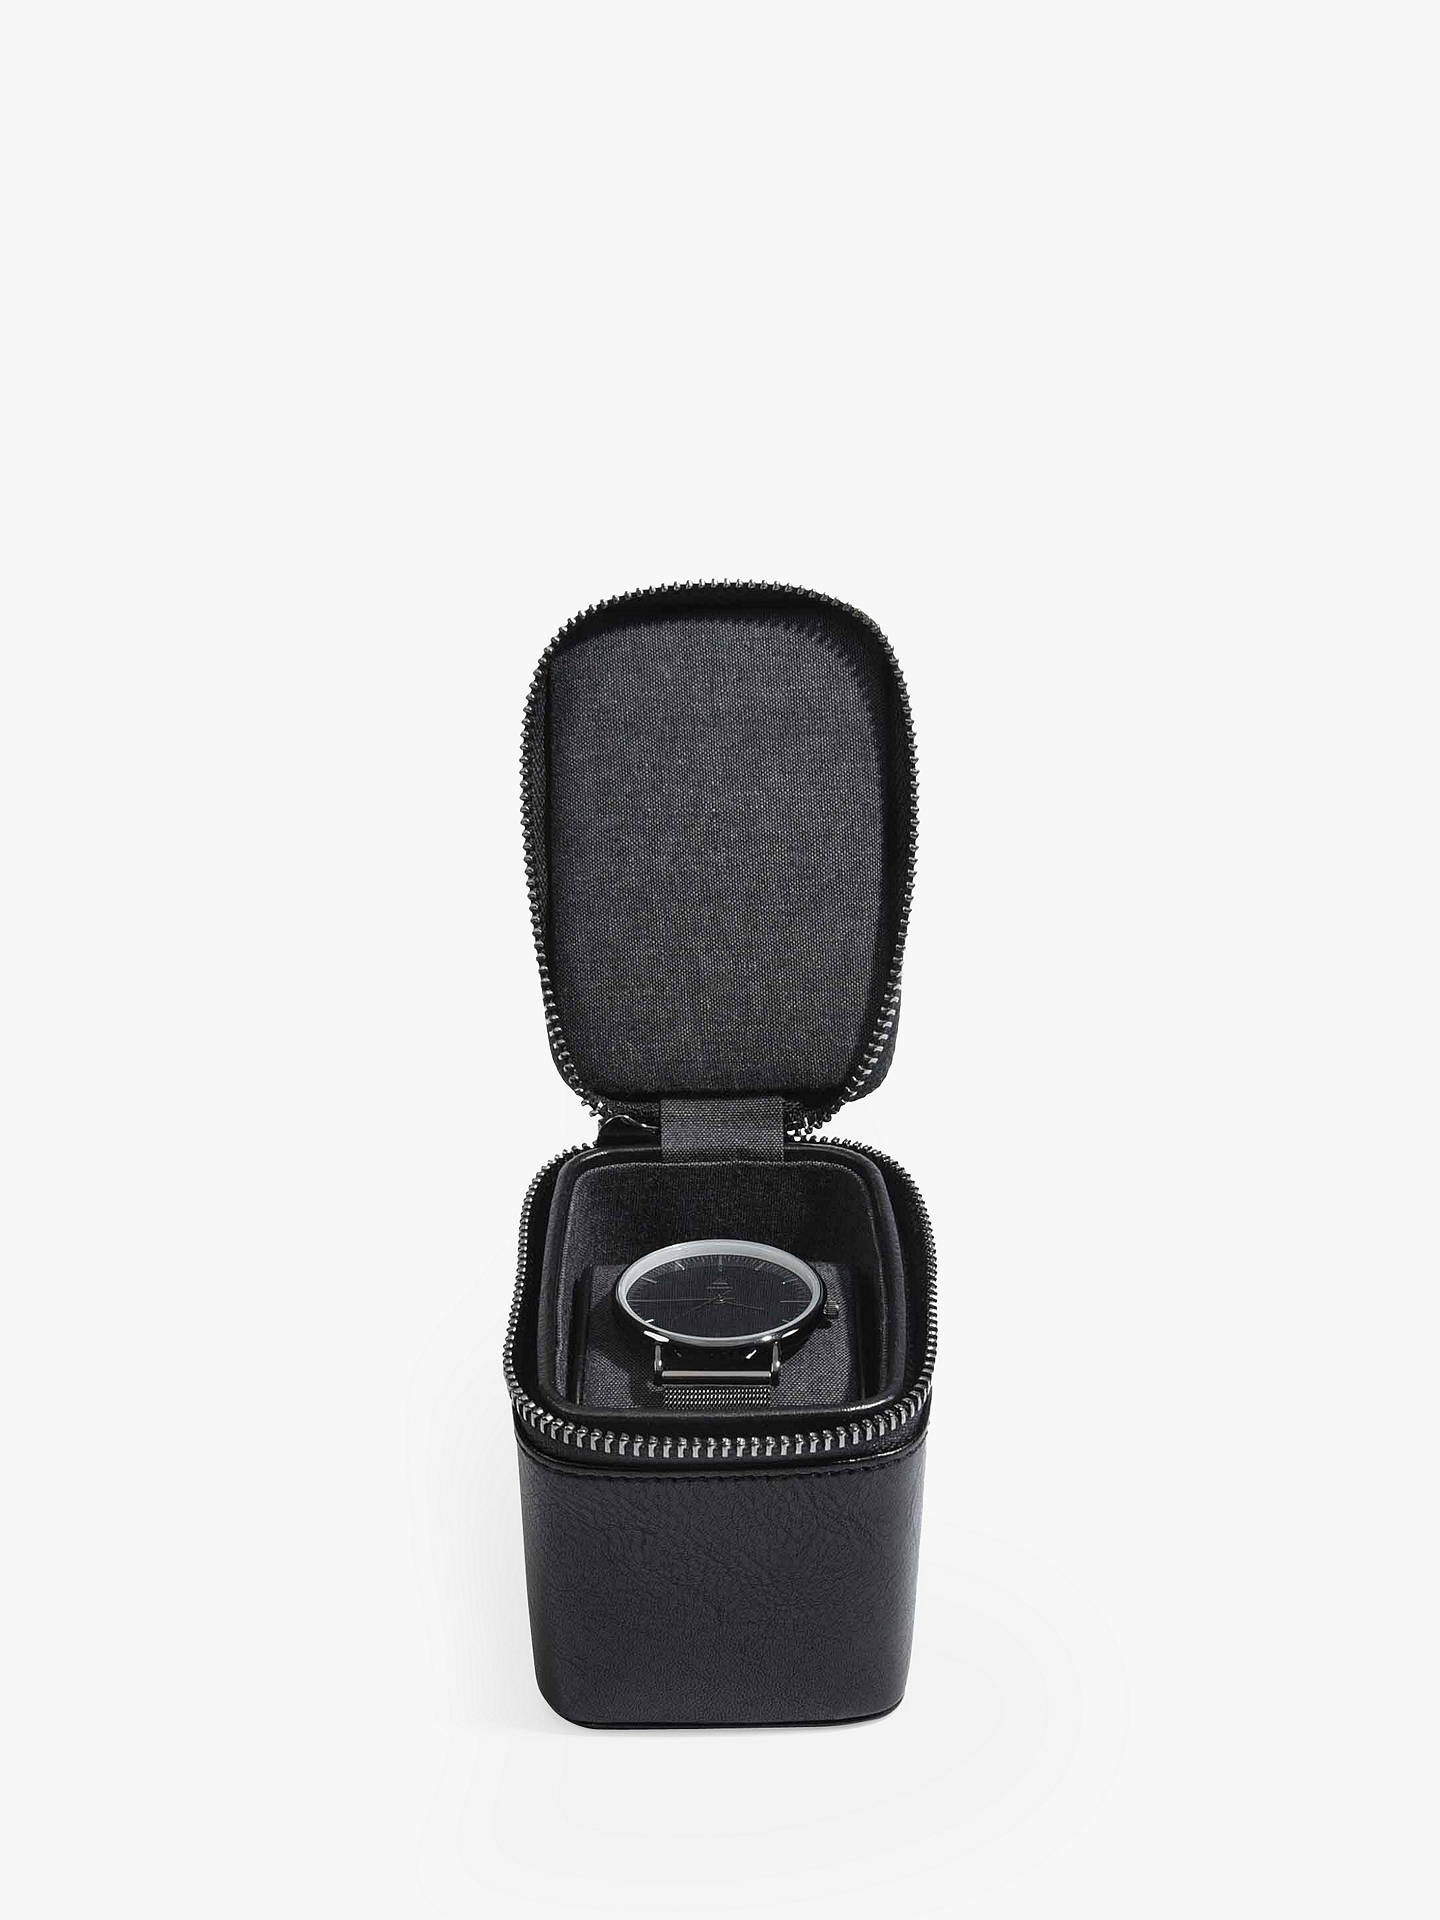 Buy Stackers Single Watch Box, Black Online at johnlewis.com